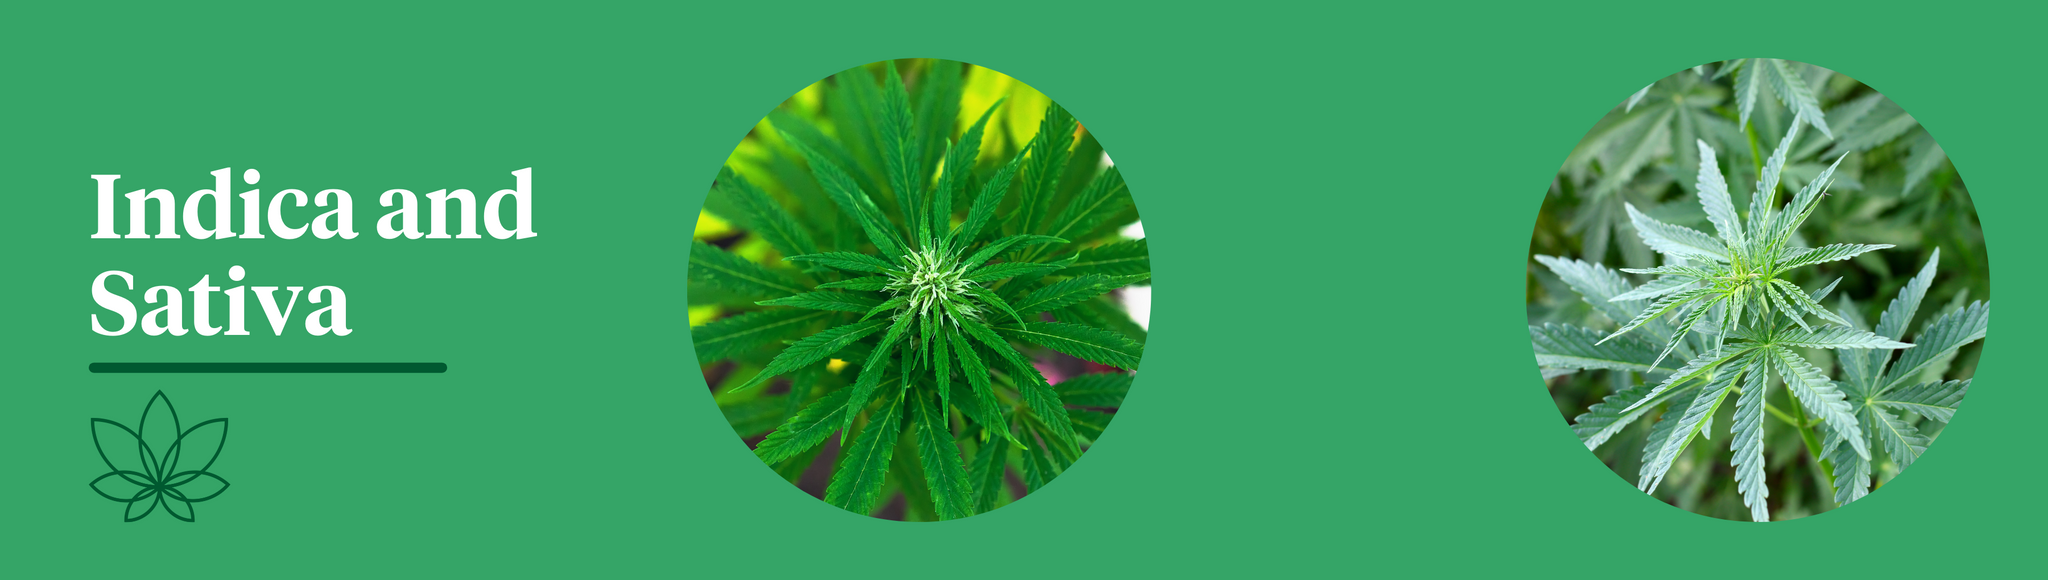 A green background showing the Cannabis Indica and Cannabis Sativa plants to show what is the difference between indica and sativa.